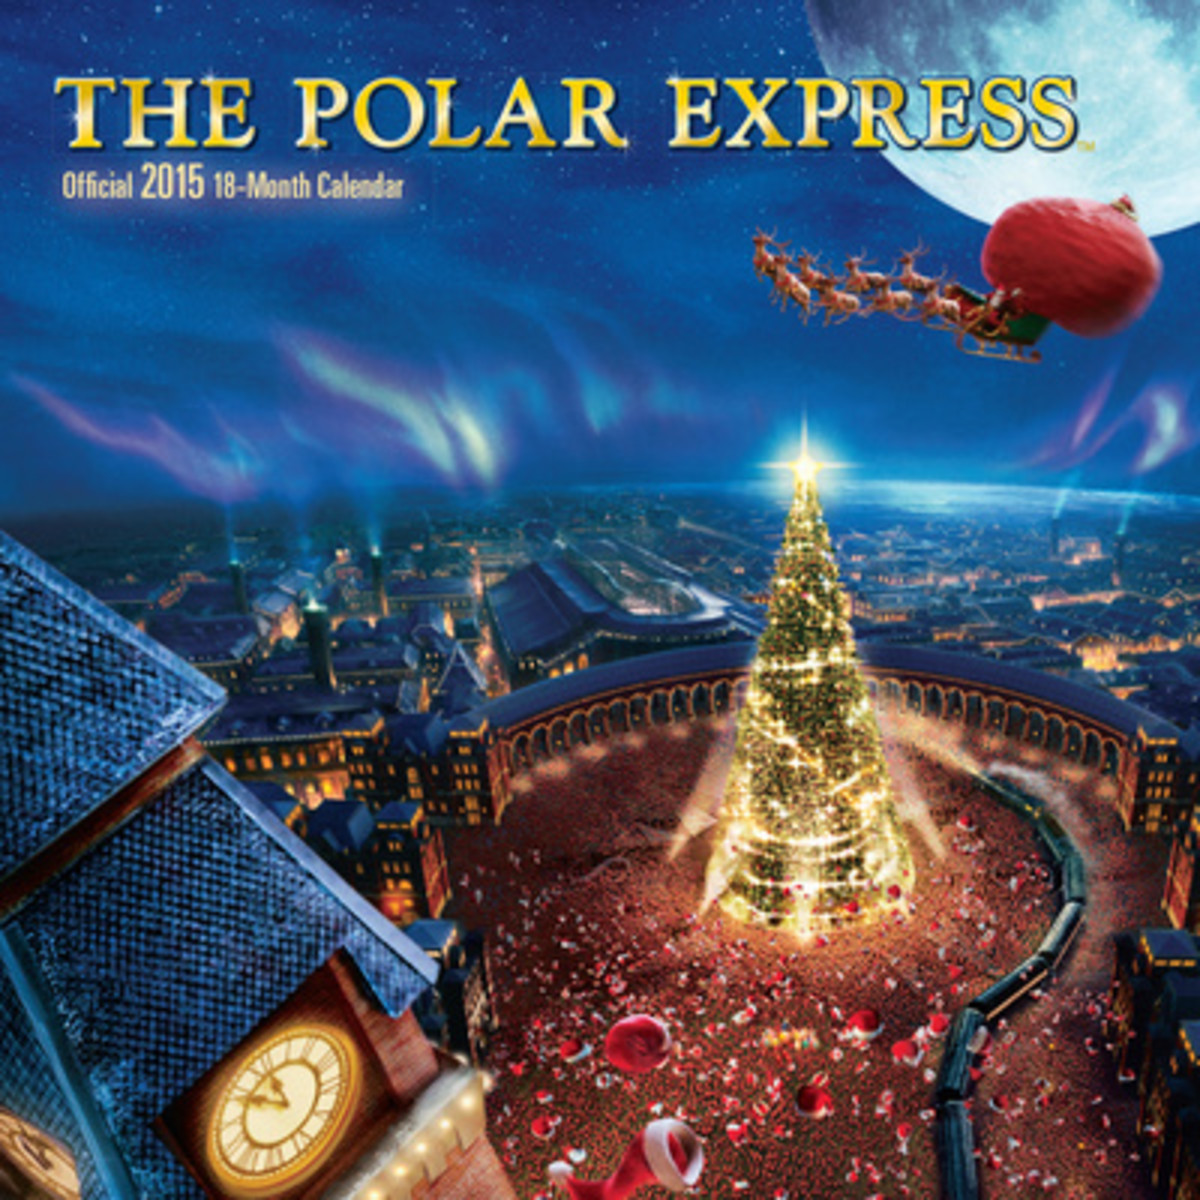 Polar Express 2015 Wall Calendar